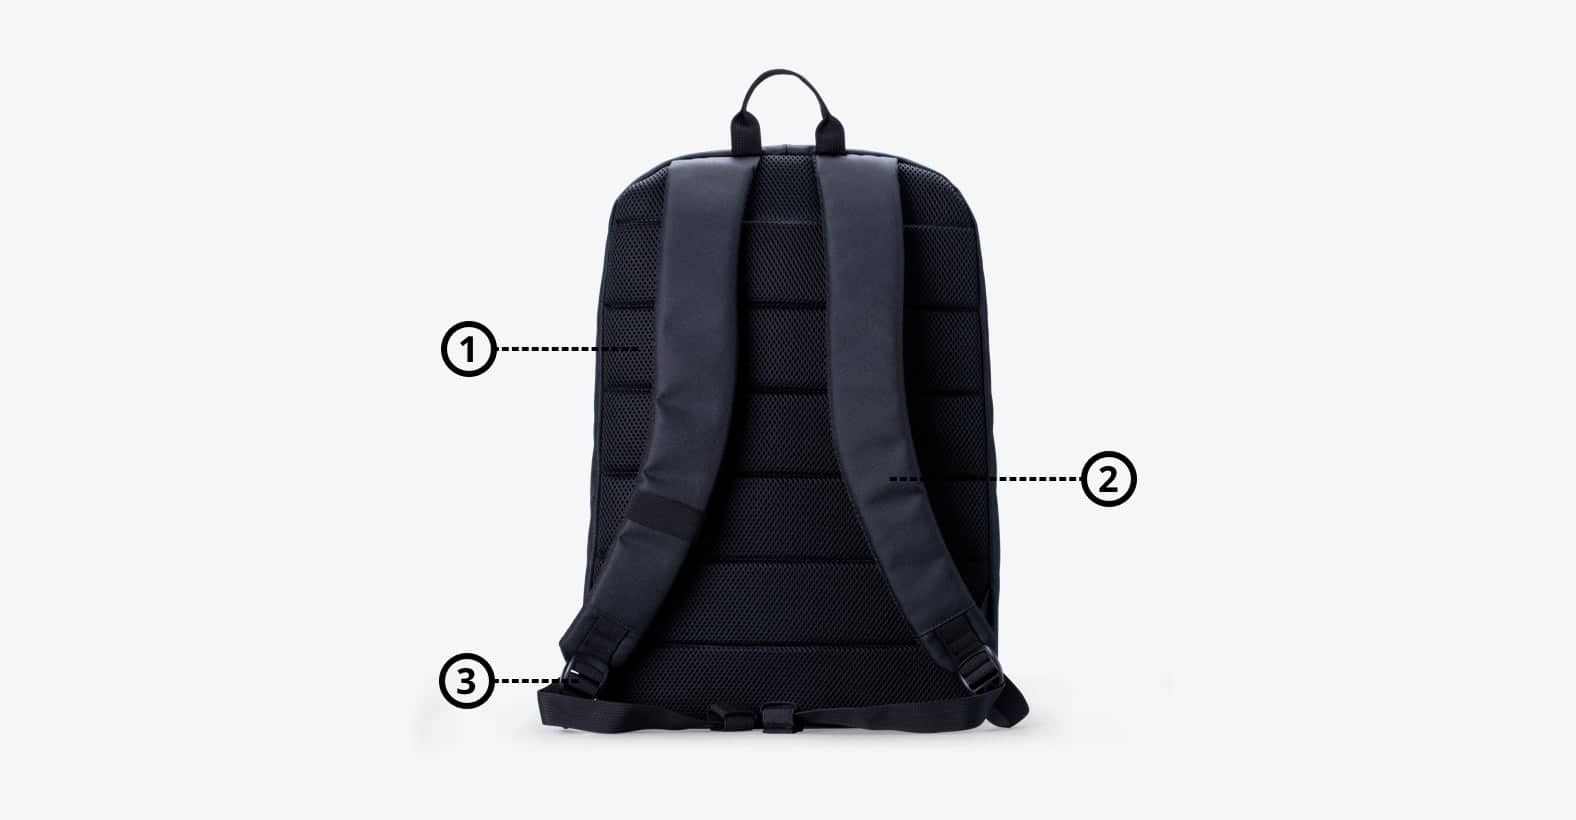 The Shifter Backpack